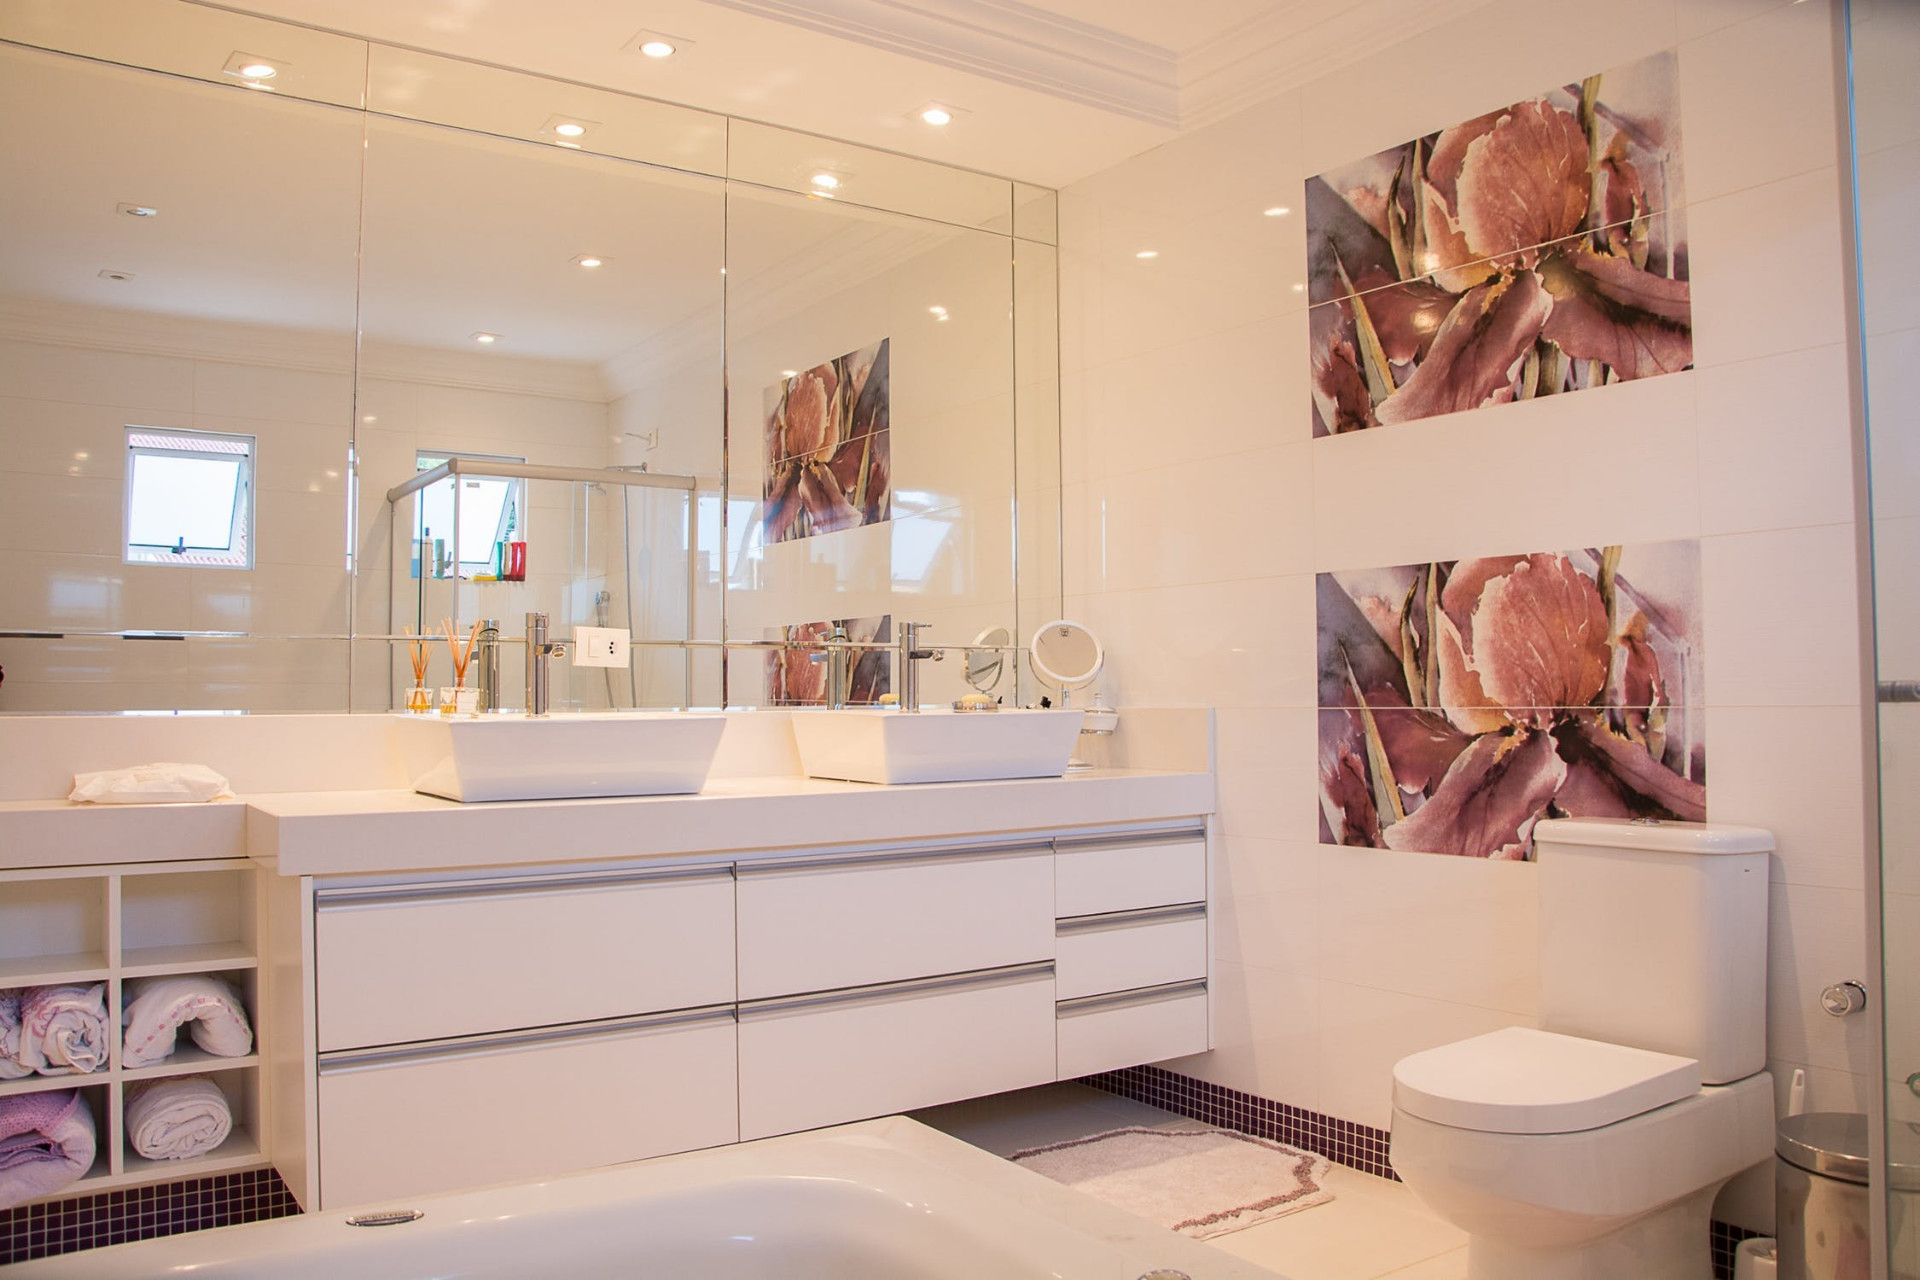 Learn How to Remove Hard Water Stains from your Bathroom Tiles